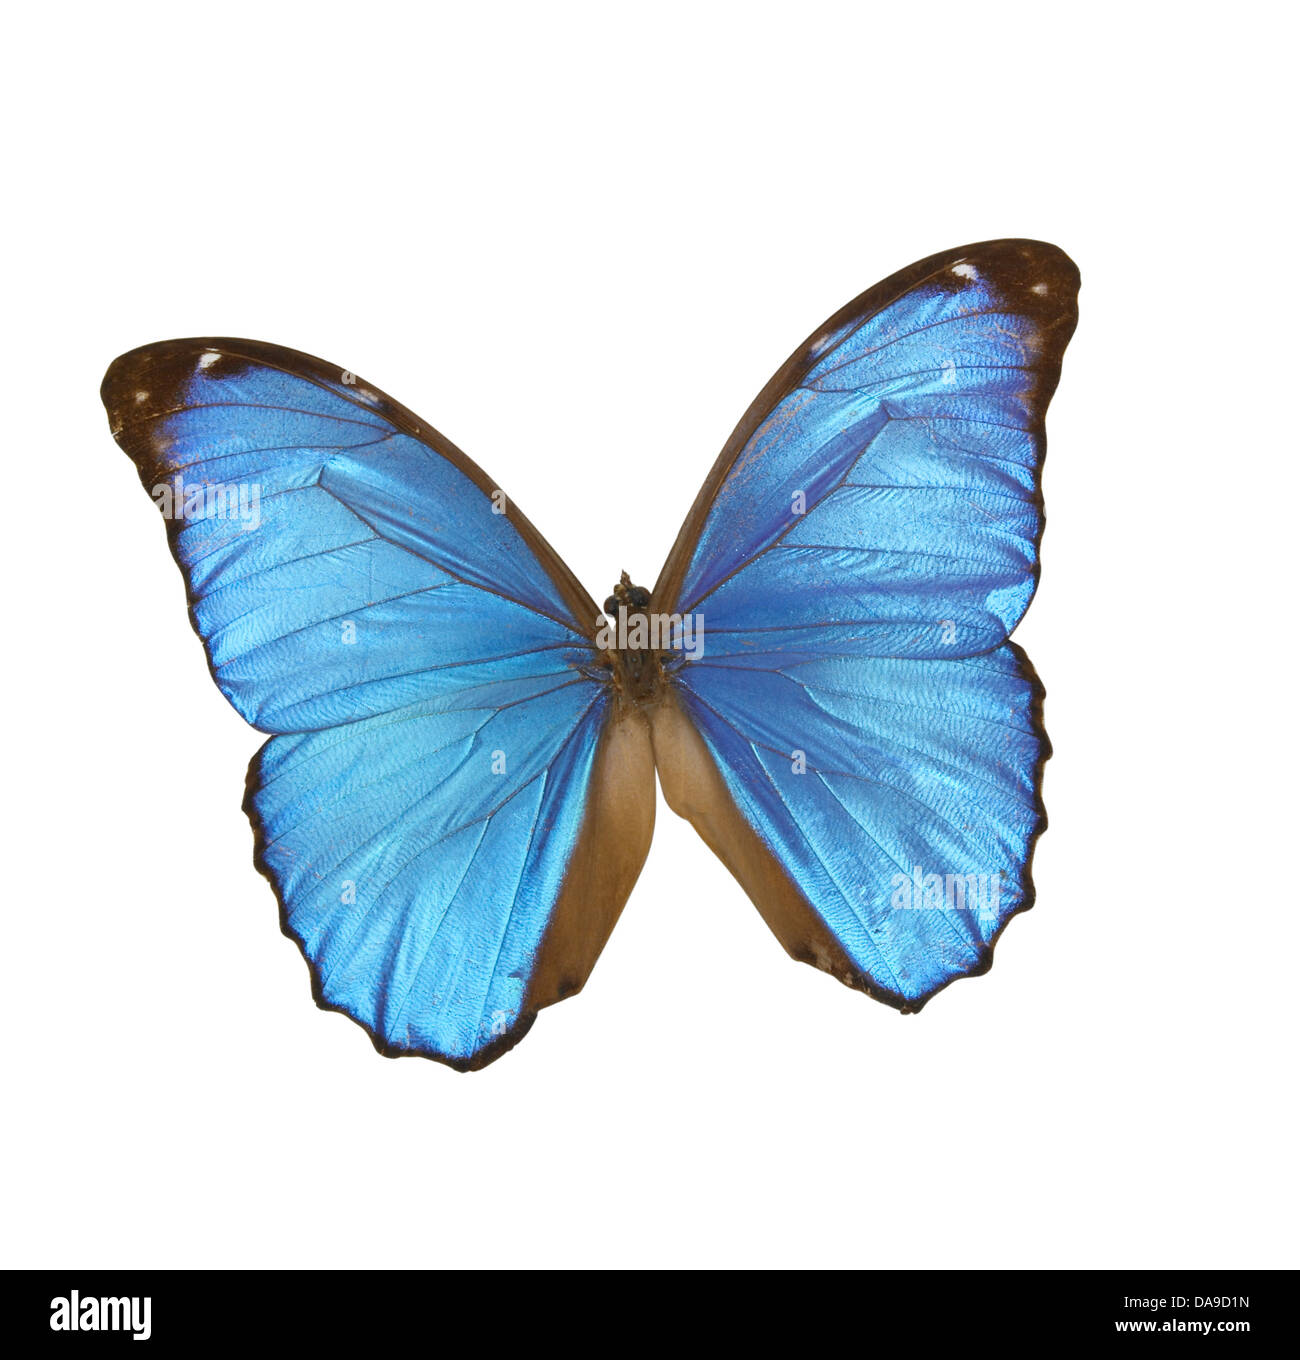 Blue butterfly - Stock Image